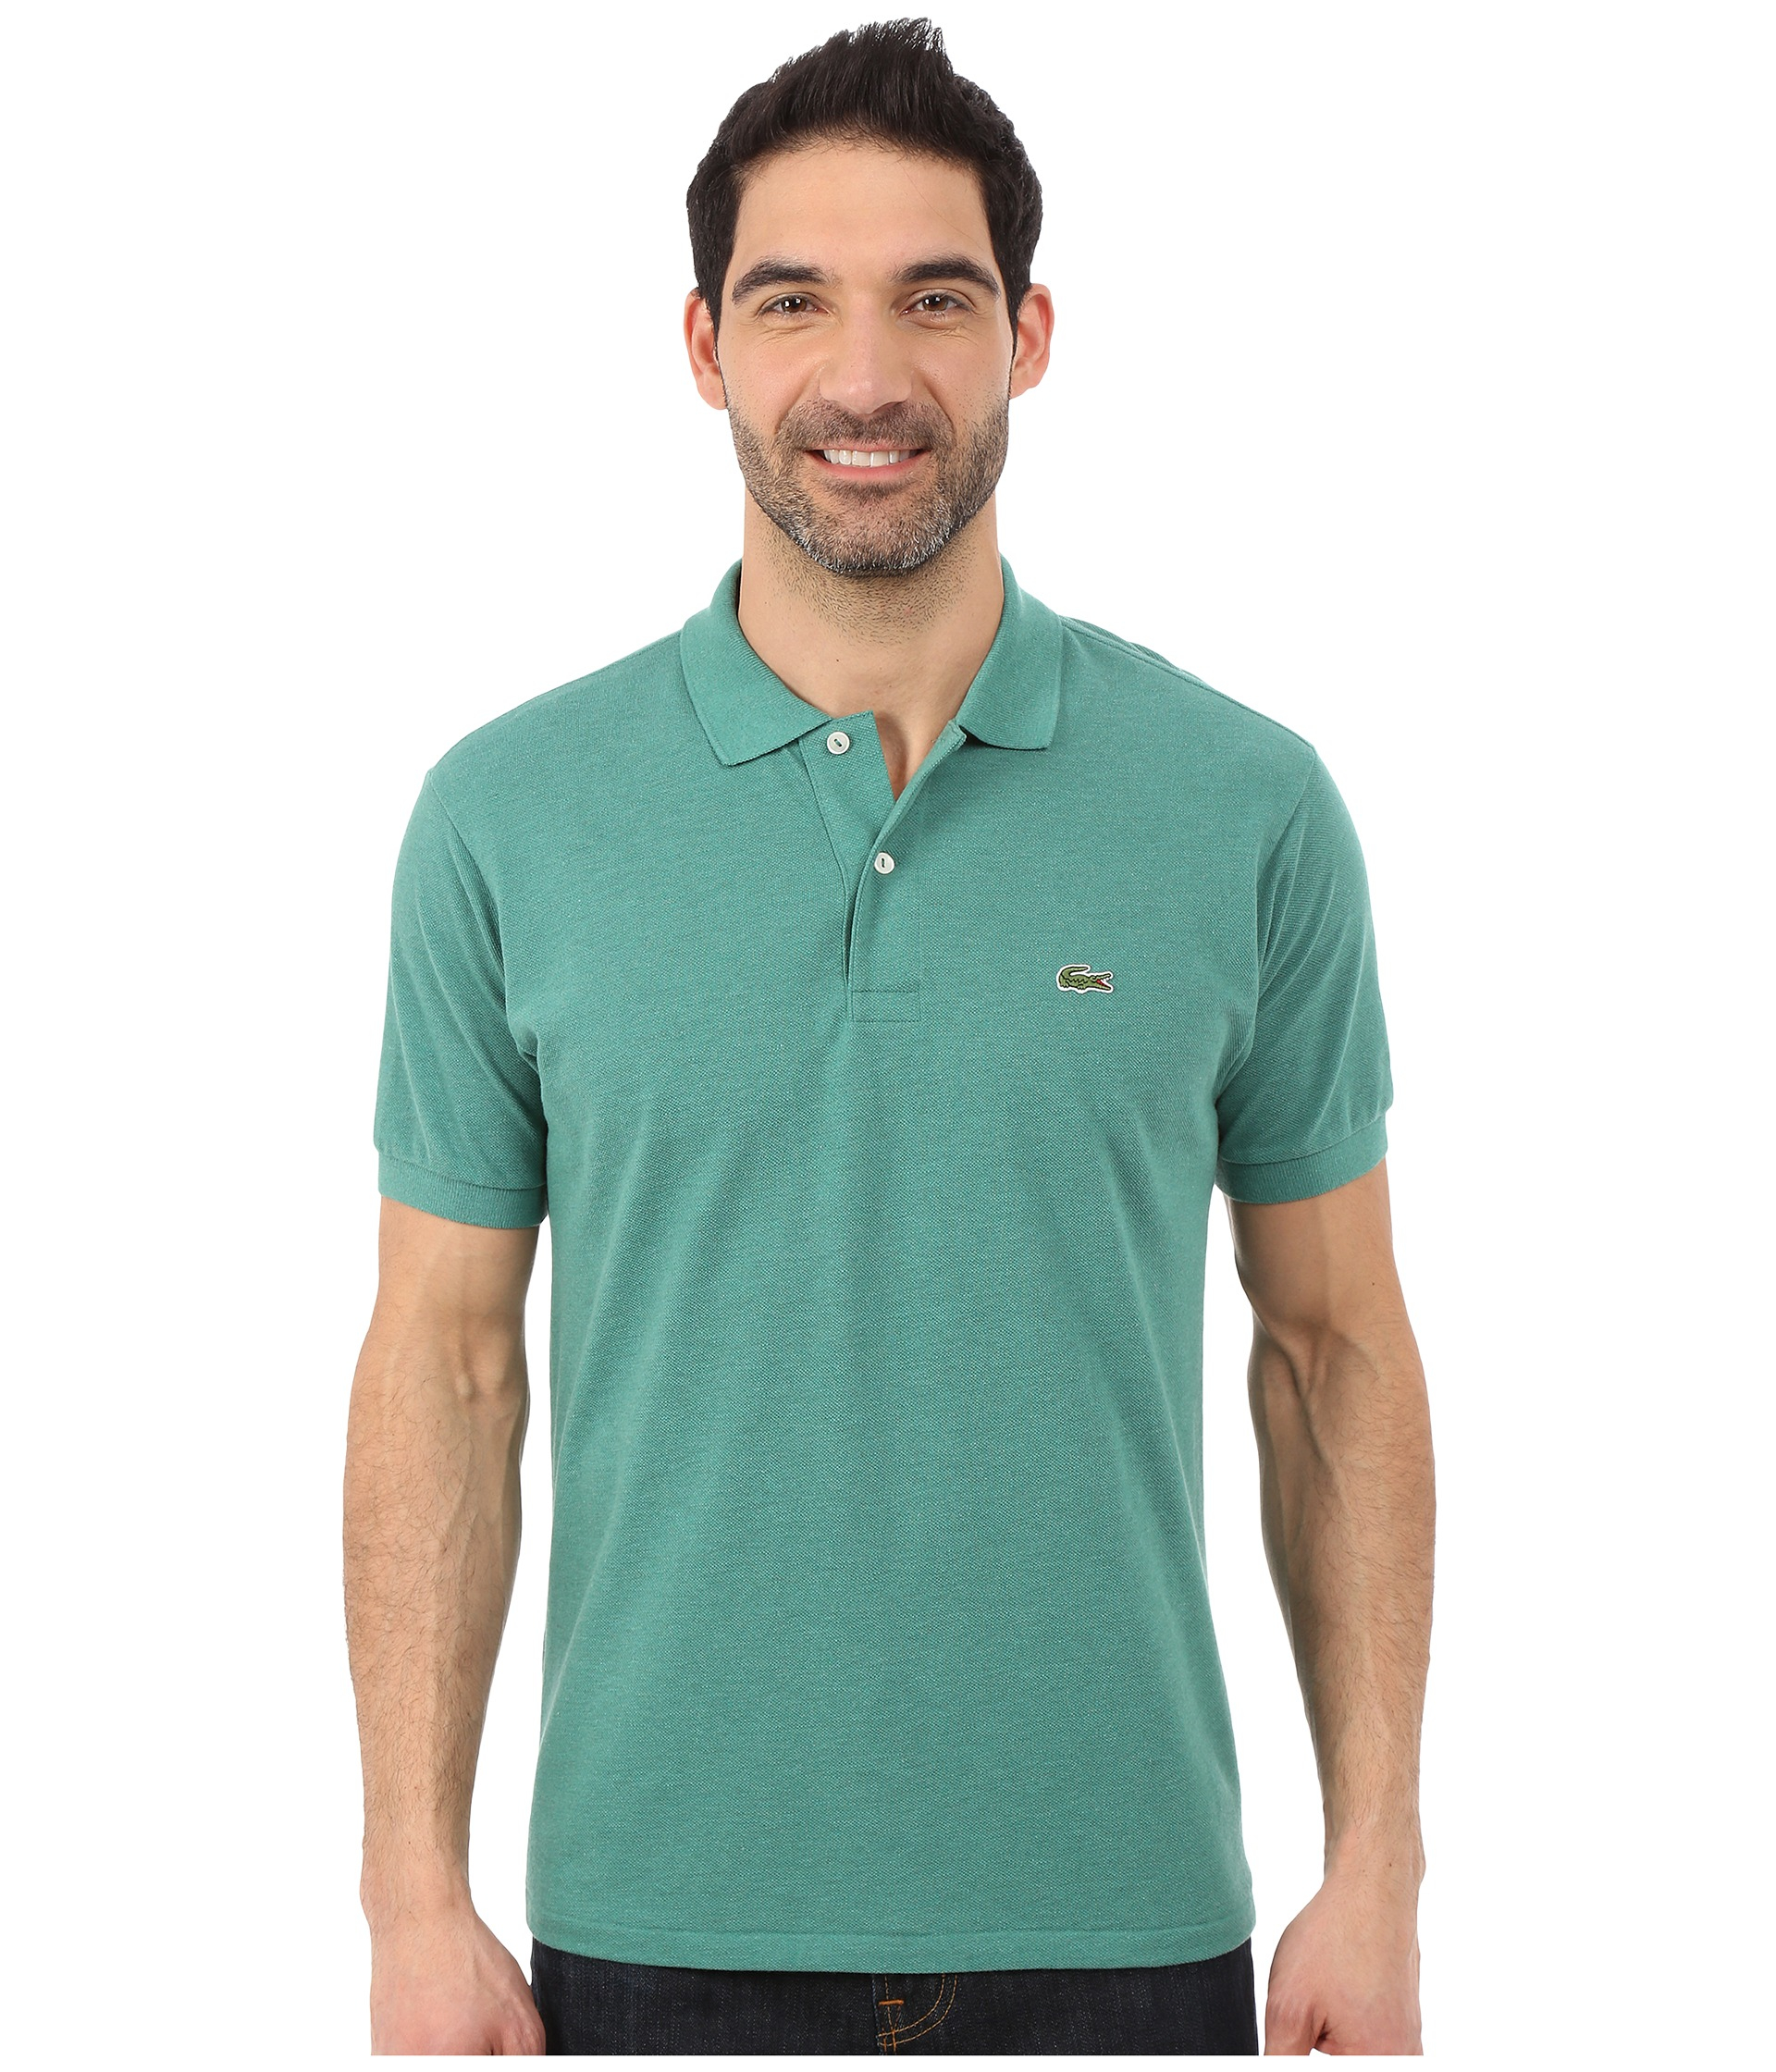 lacoste short sleeve chine classic pique polo shirt in. Black Bedroom Furniture Sets. Home Design Ideas